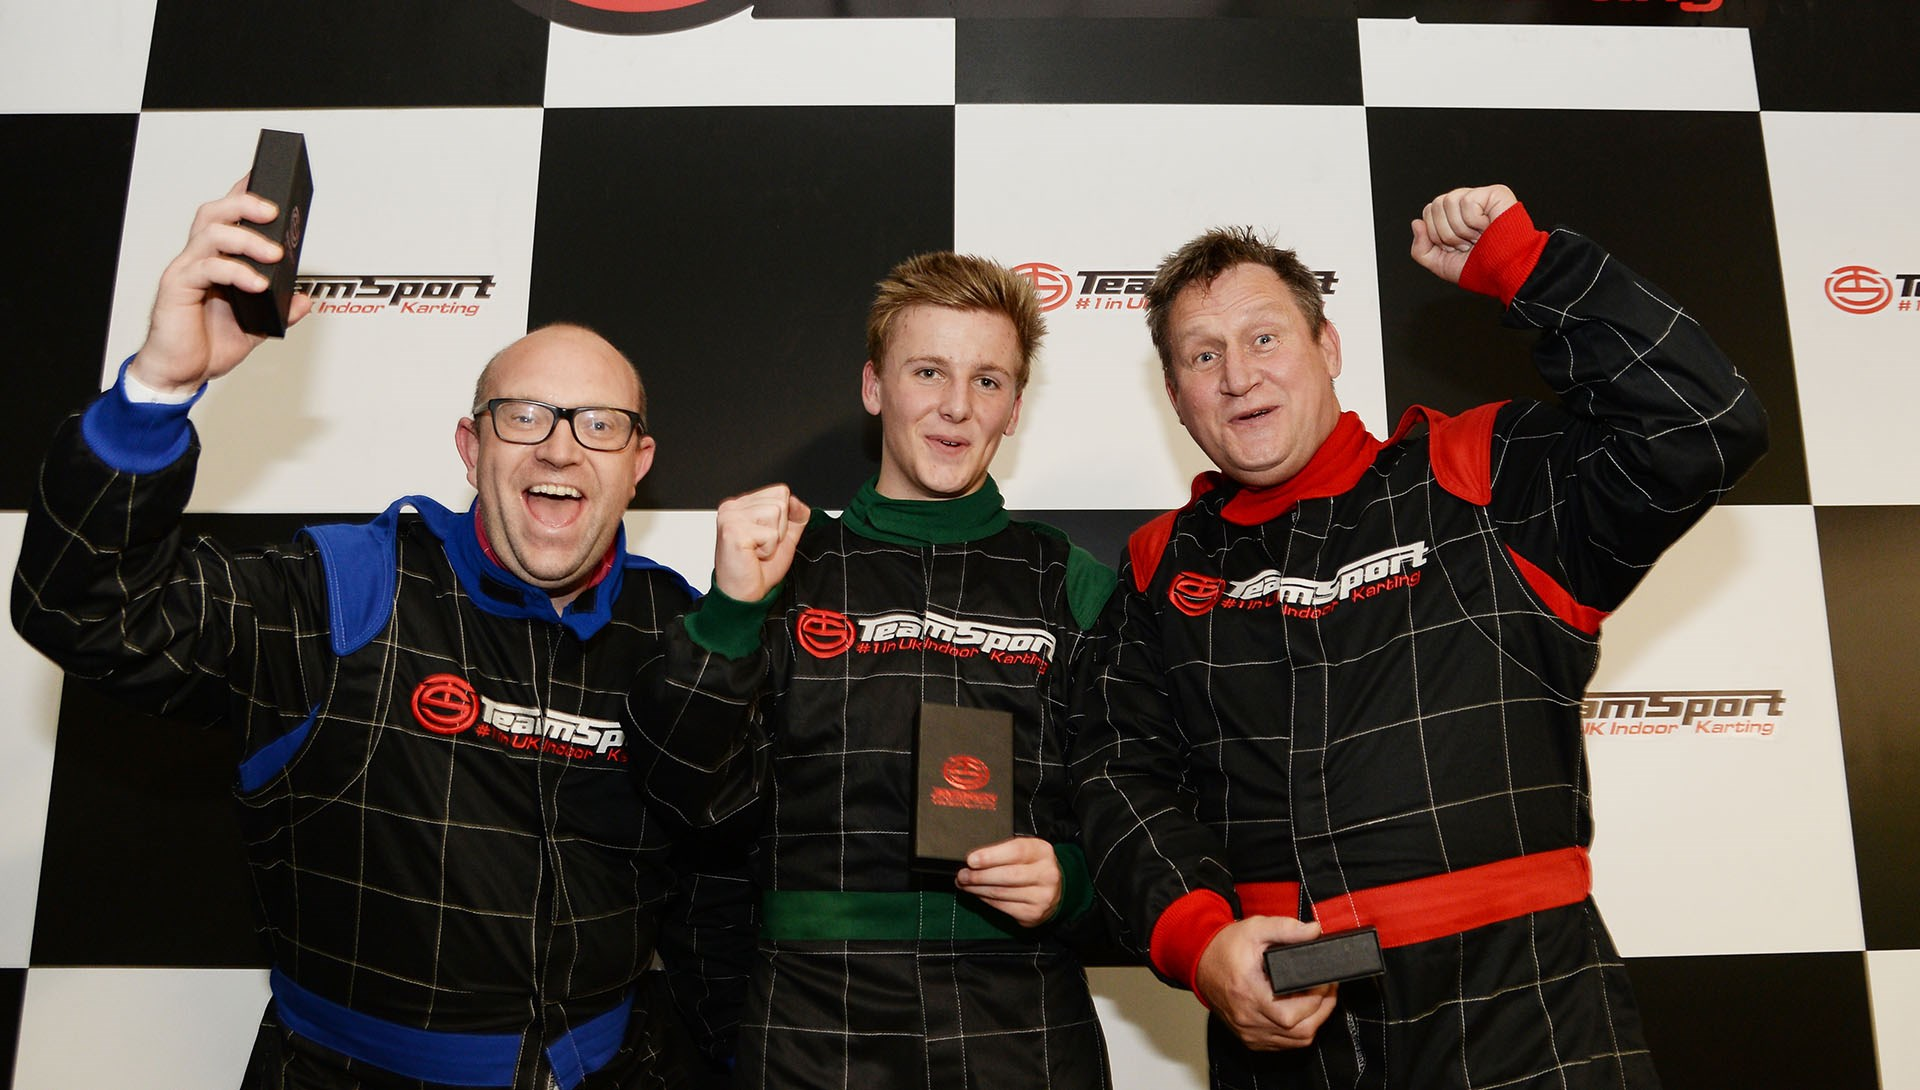 TeamSport_Gallery_Go_Karting_Gosport_1920x1090-min_4.jpg